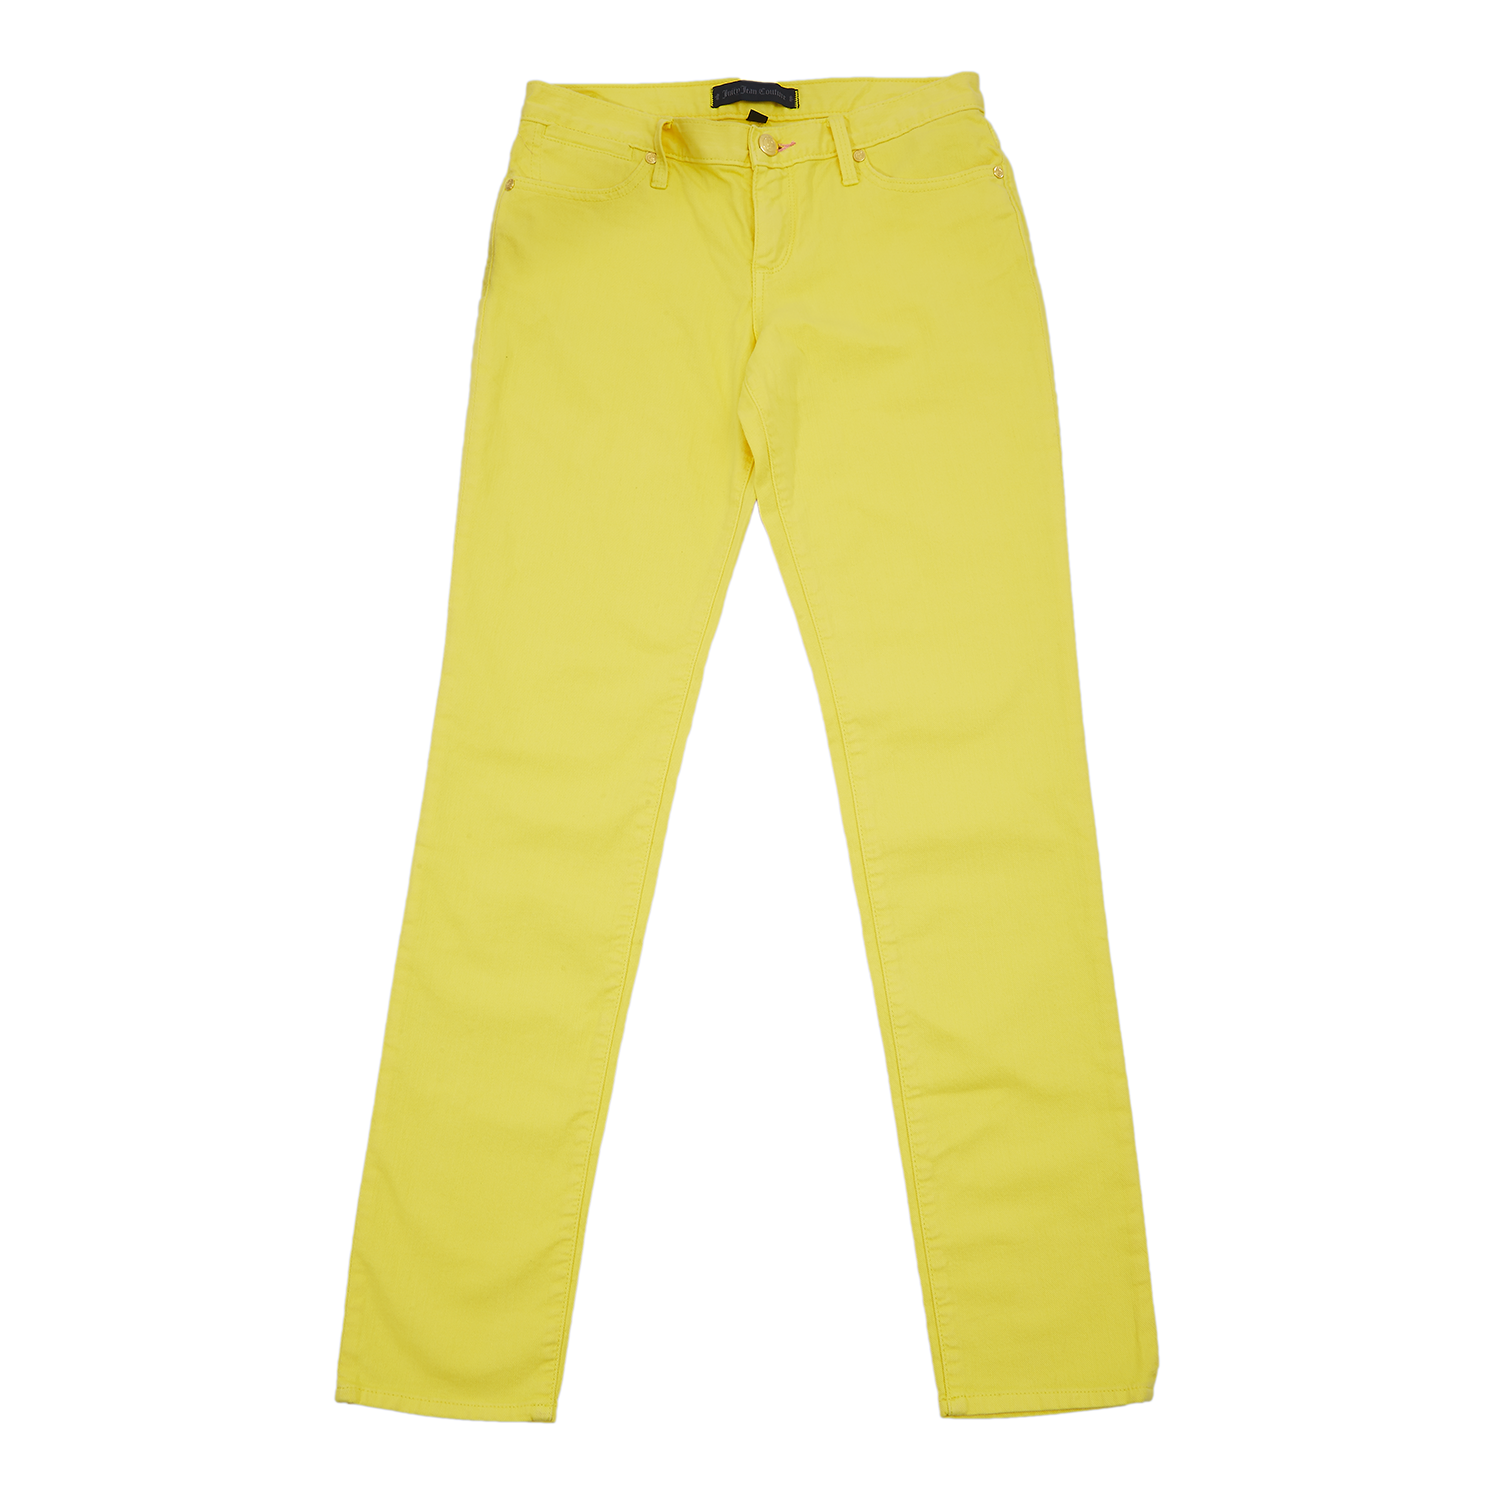 JUICY COUTURE KIDS - Παιδικό παντελόνι Juicy Couture κίτρινο